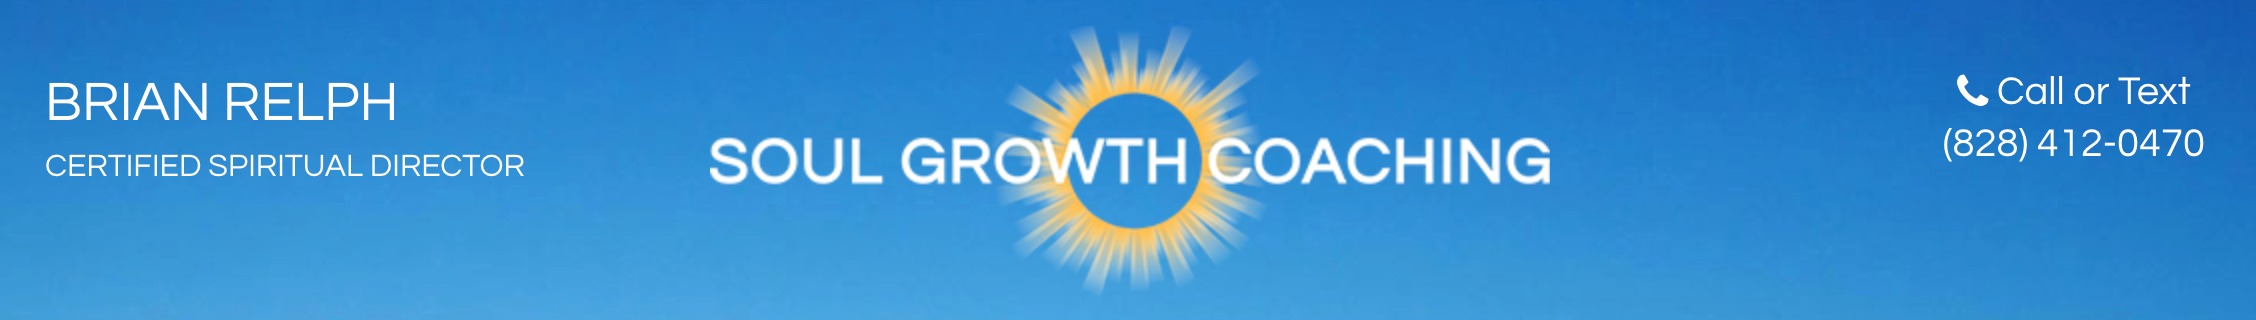 Soul Growth Coaching